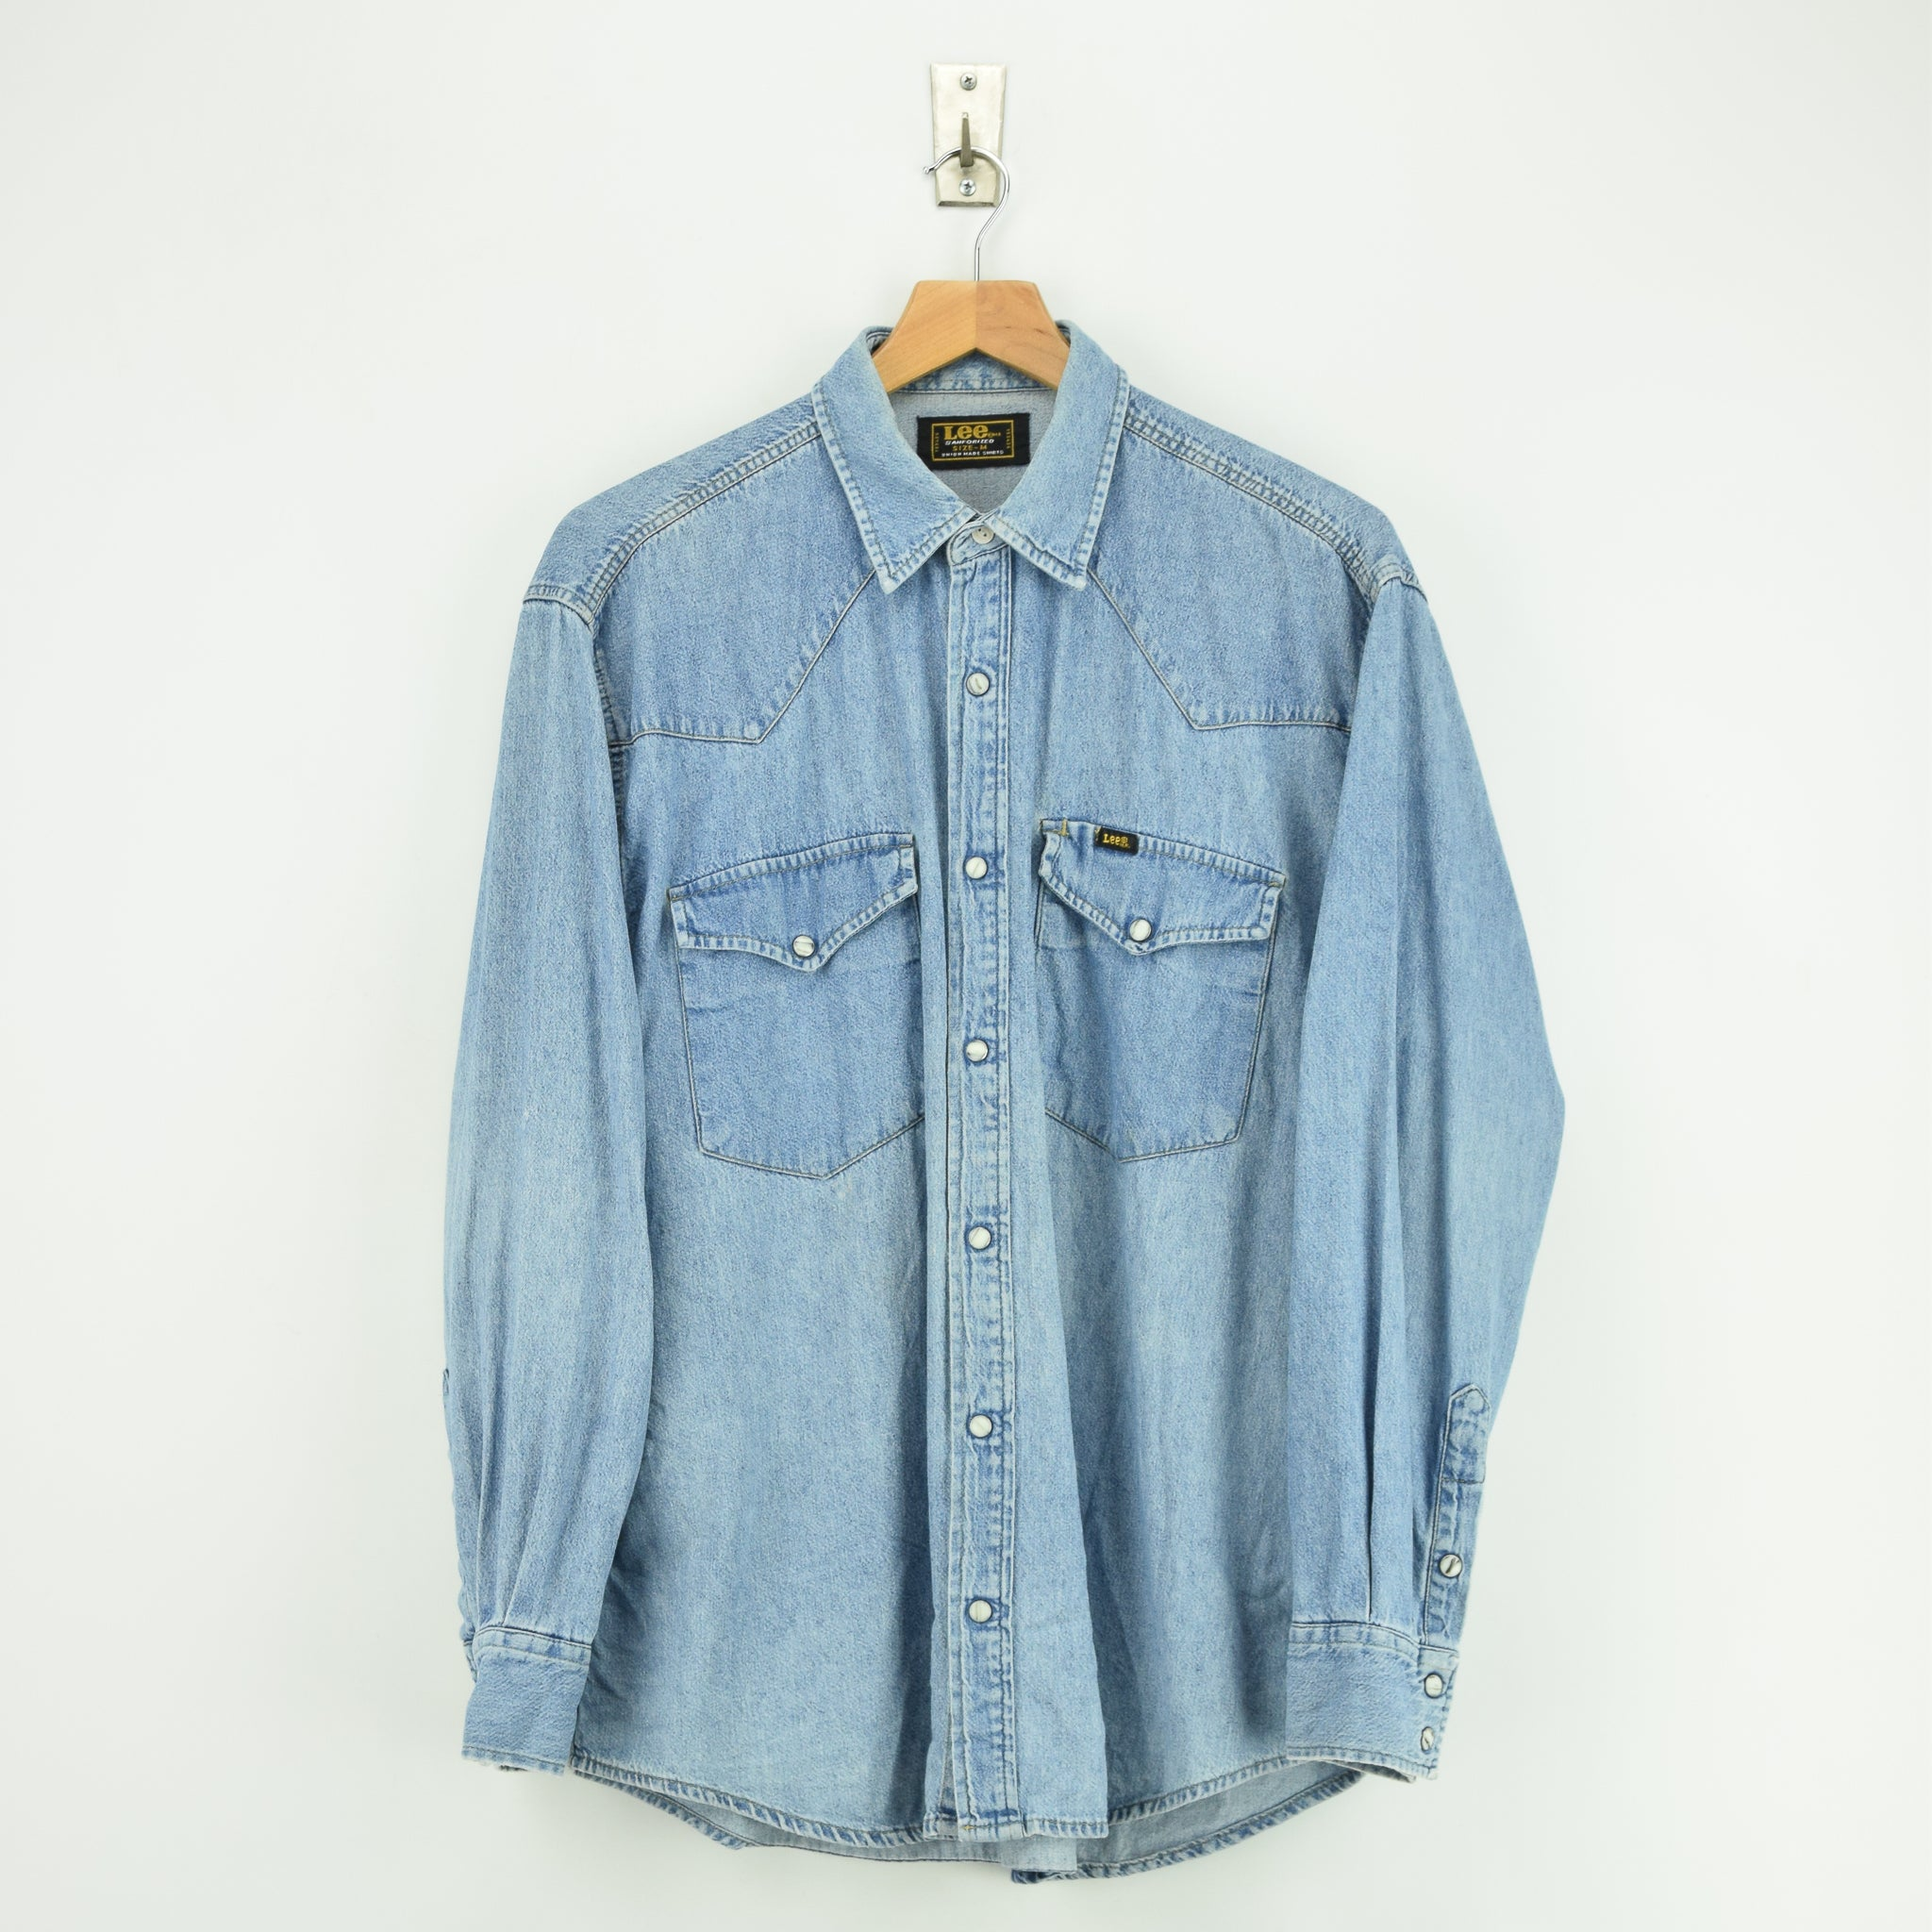 a7cf50cc596 Vintage Lee Jeans Sanforized Stonewash Blue Denim Western Shirt Made in USA  M front ...